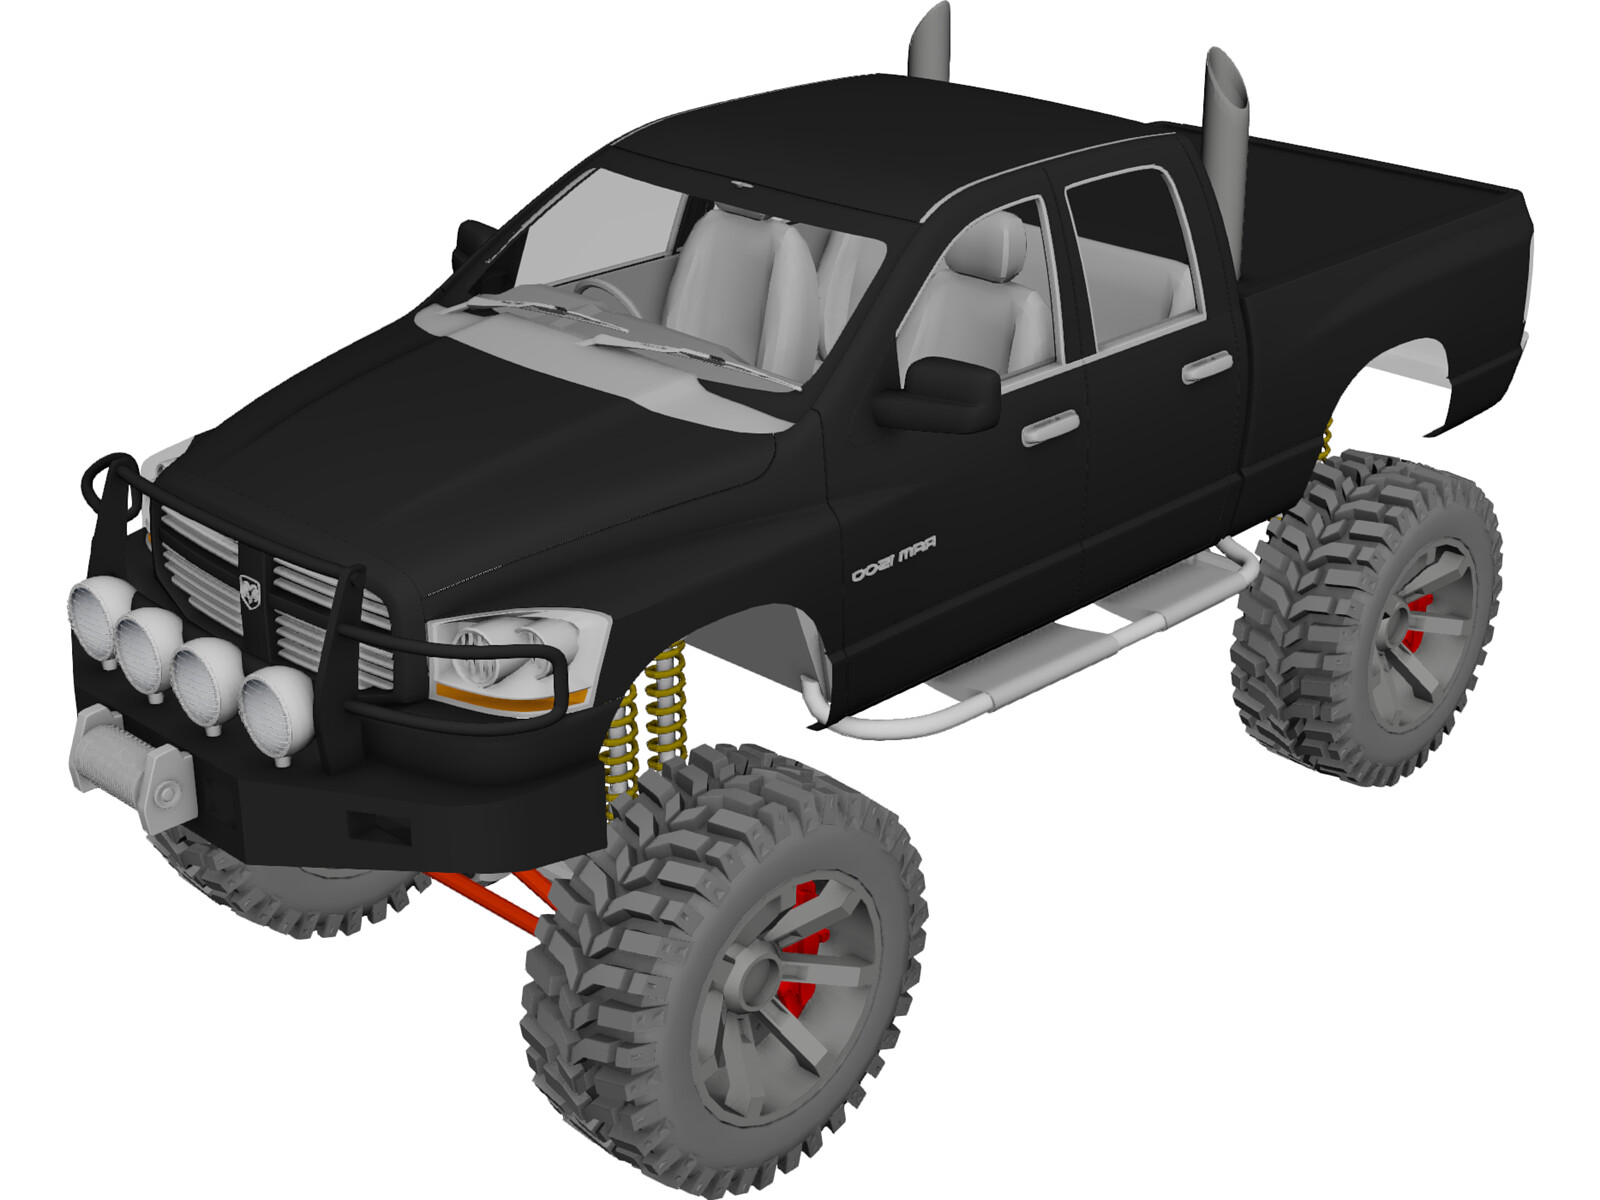 Dodge Ram Offroad (2007) [Lifted]